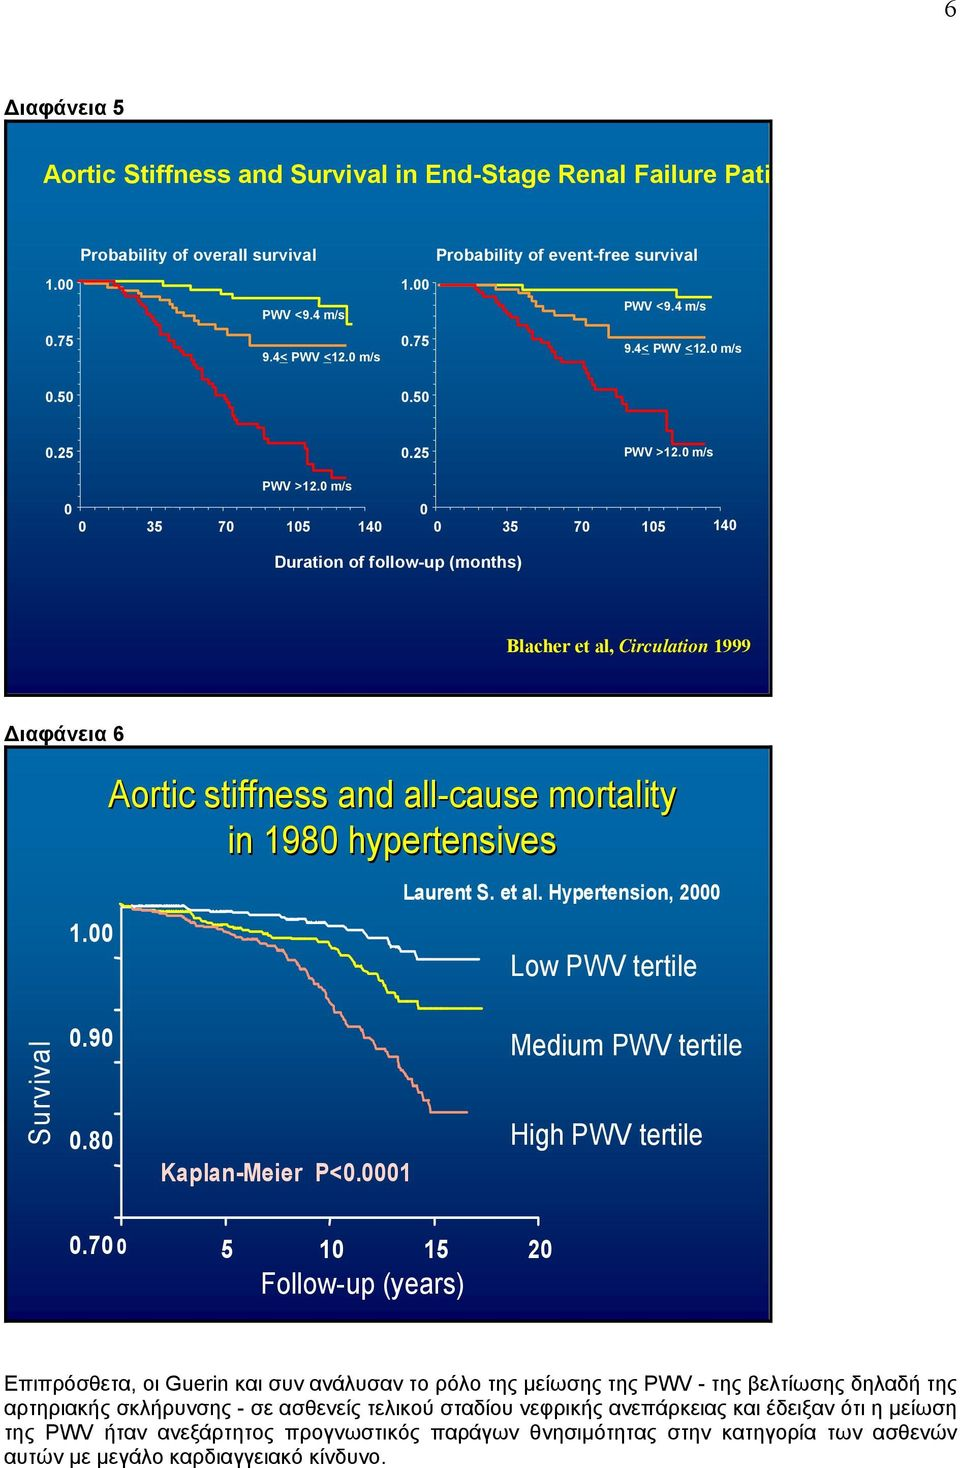 0 m/s 0 0 35 70 105 140 0 0 35 70 105 140 Duration of follow-up (months) Blacher et al, Circulation 1999 ιαφάνεια 6 Aortic stiffness and all-cause mortality in 1980 hypertensives Laurent S. et al. Hypertension, 2000 1.